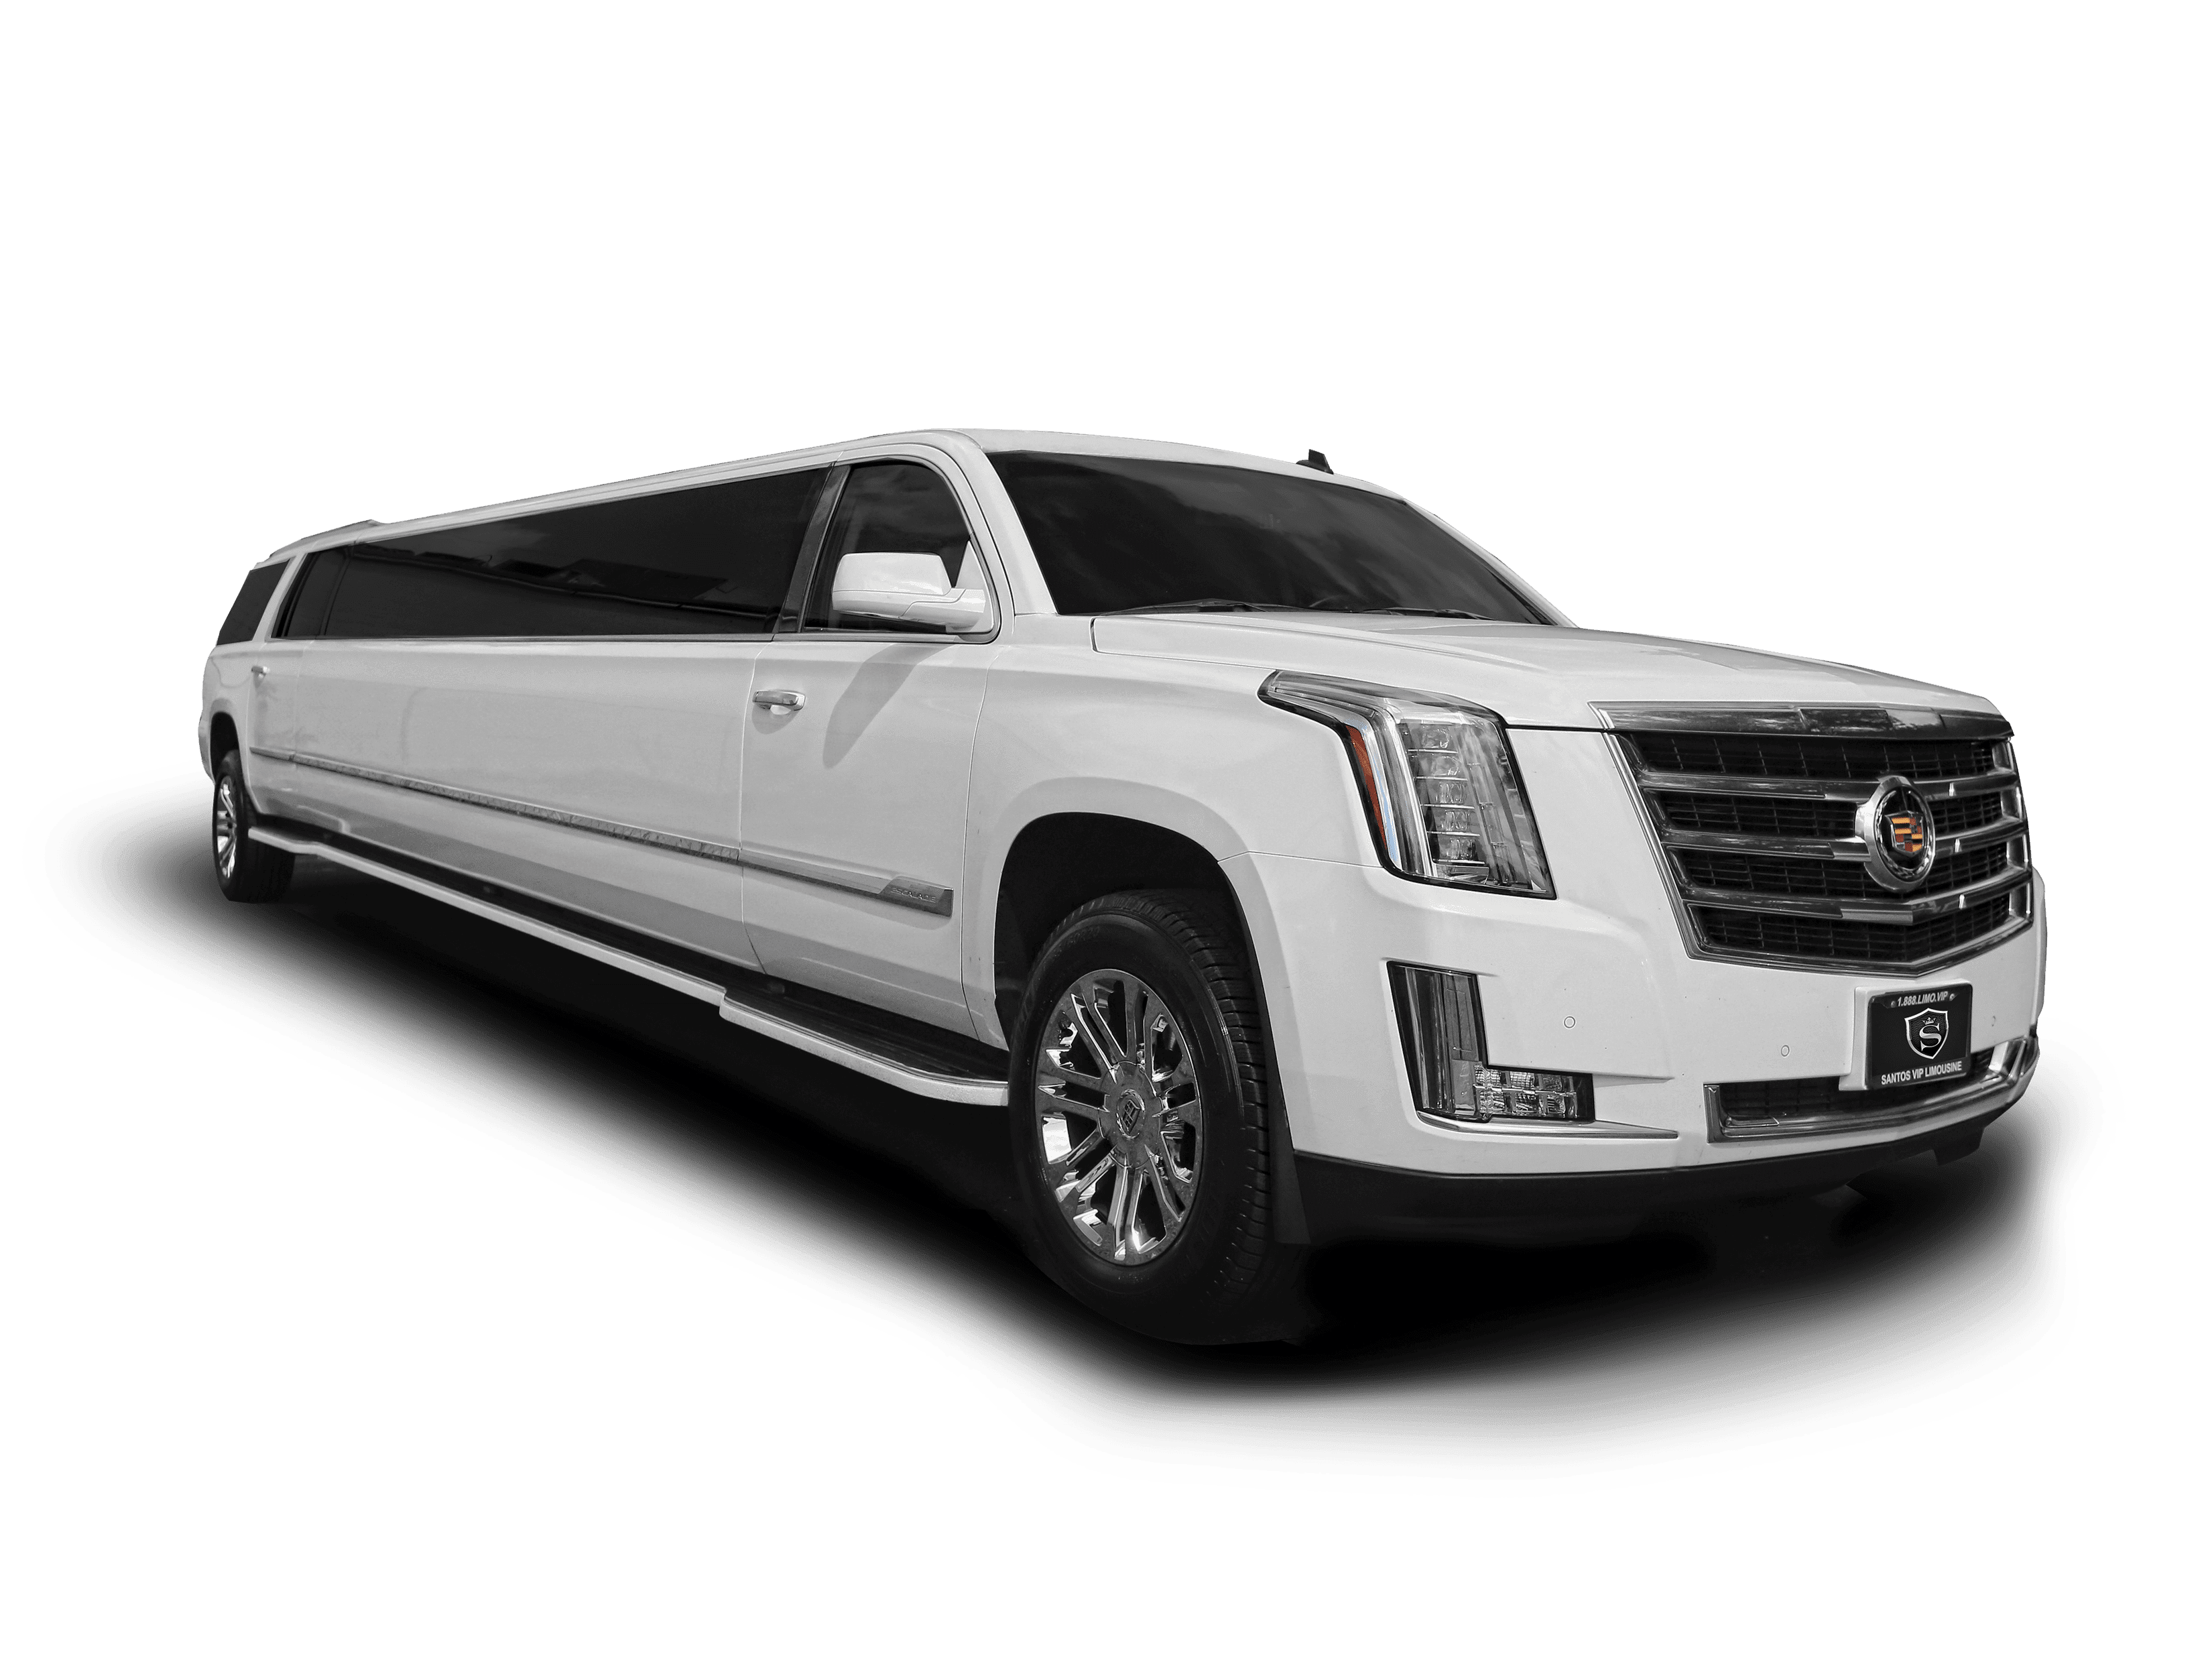 Cadillac Escalade ESV limousine - Haunted House Crawl in NJ, PA & NY